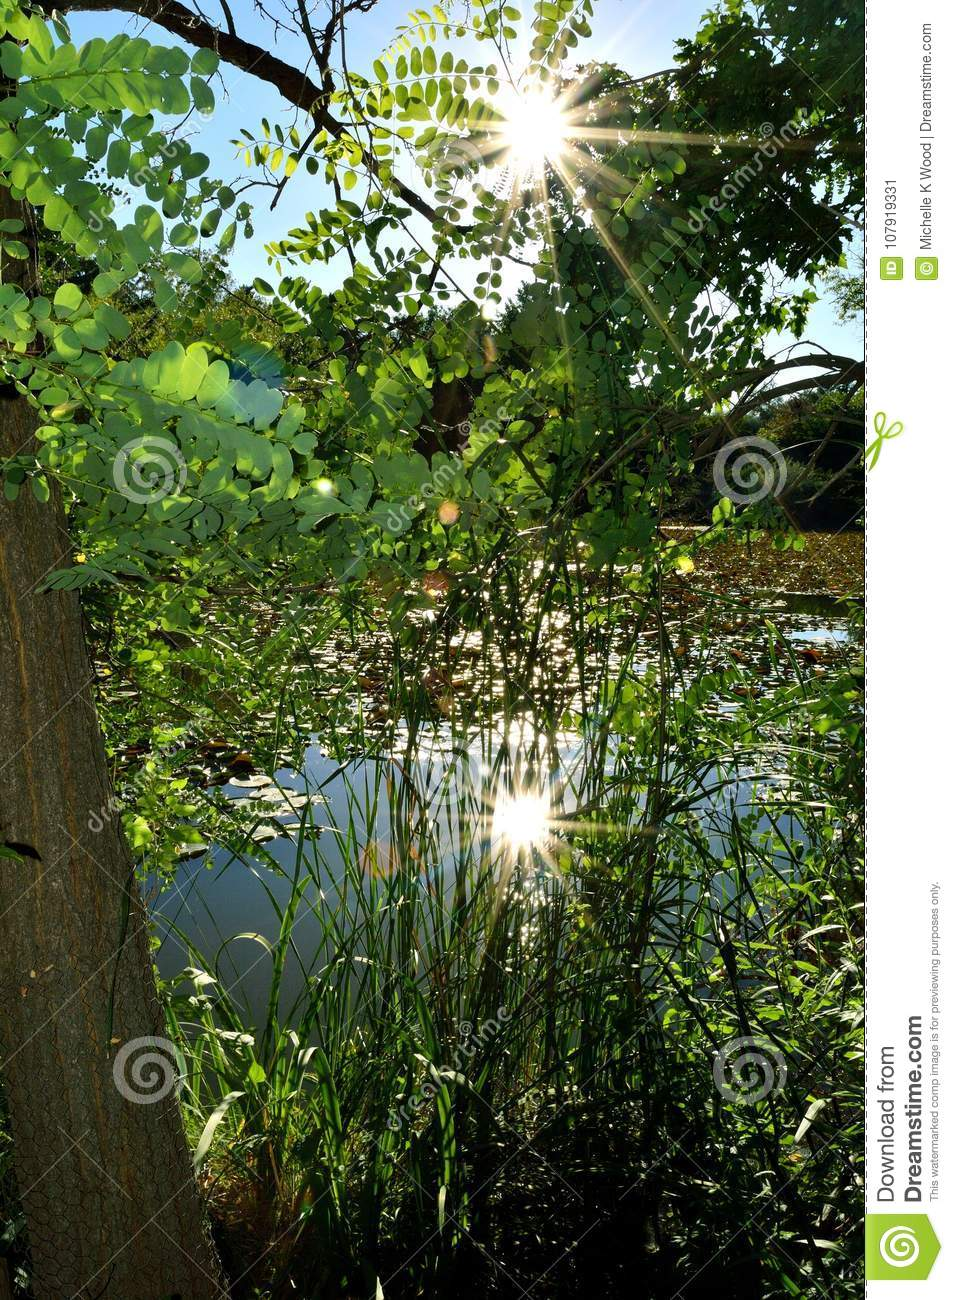 Sun reflection through trees on pond